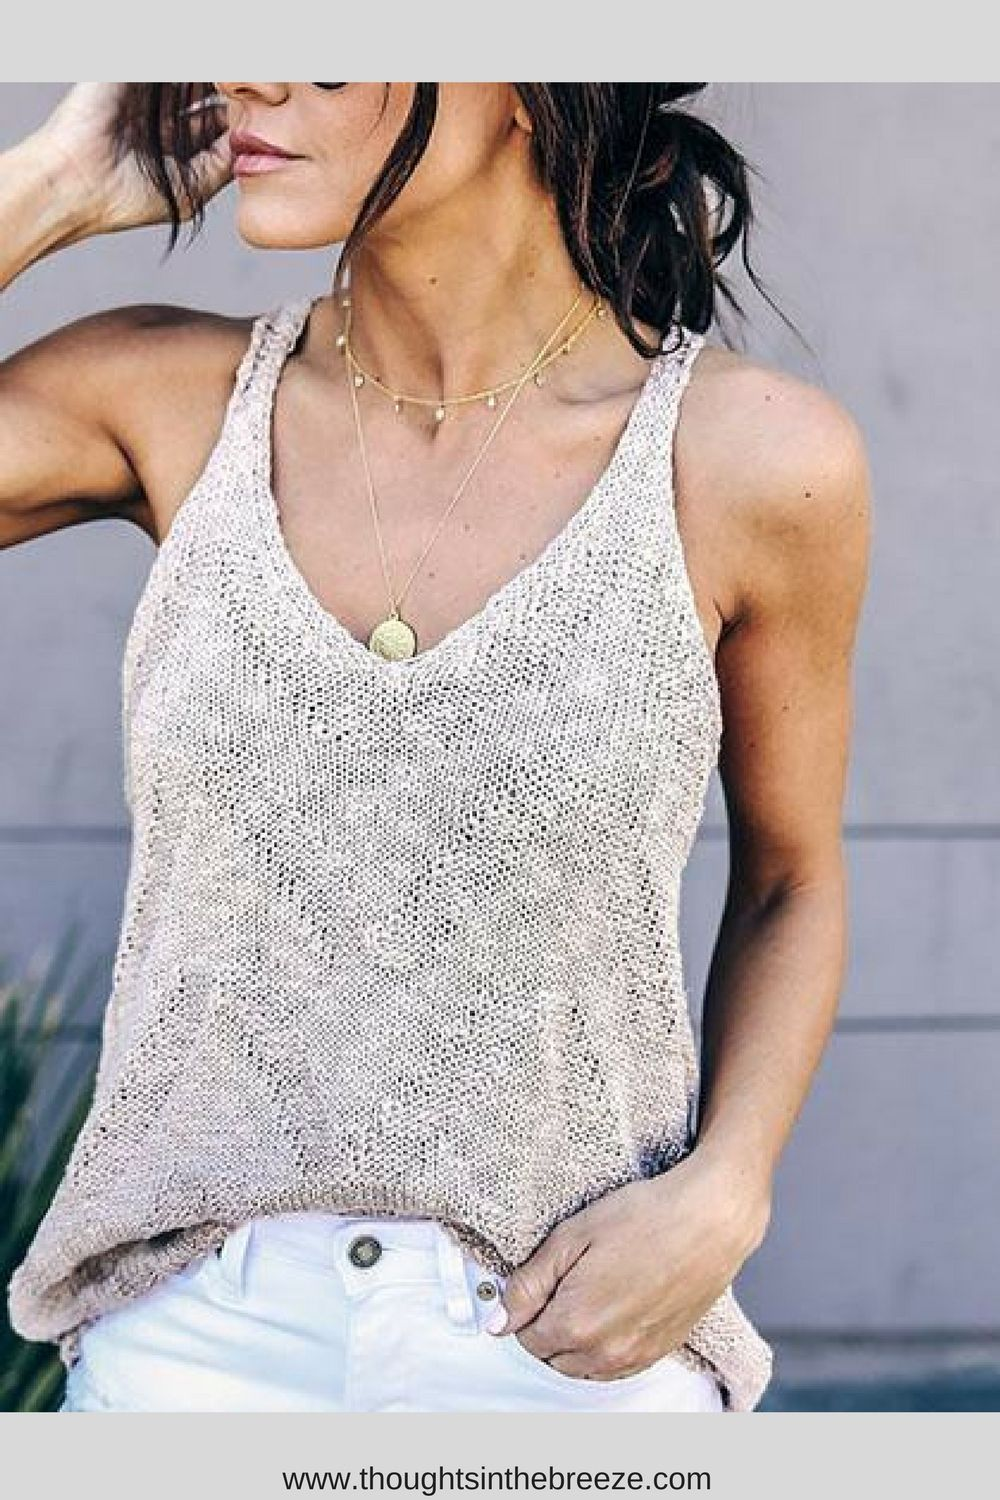 b9290c2e08689  33.99 Chicnico Simple Knit Tank Top. Fashionable sexy camisoles for any  occasion